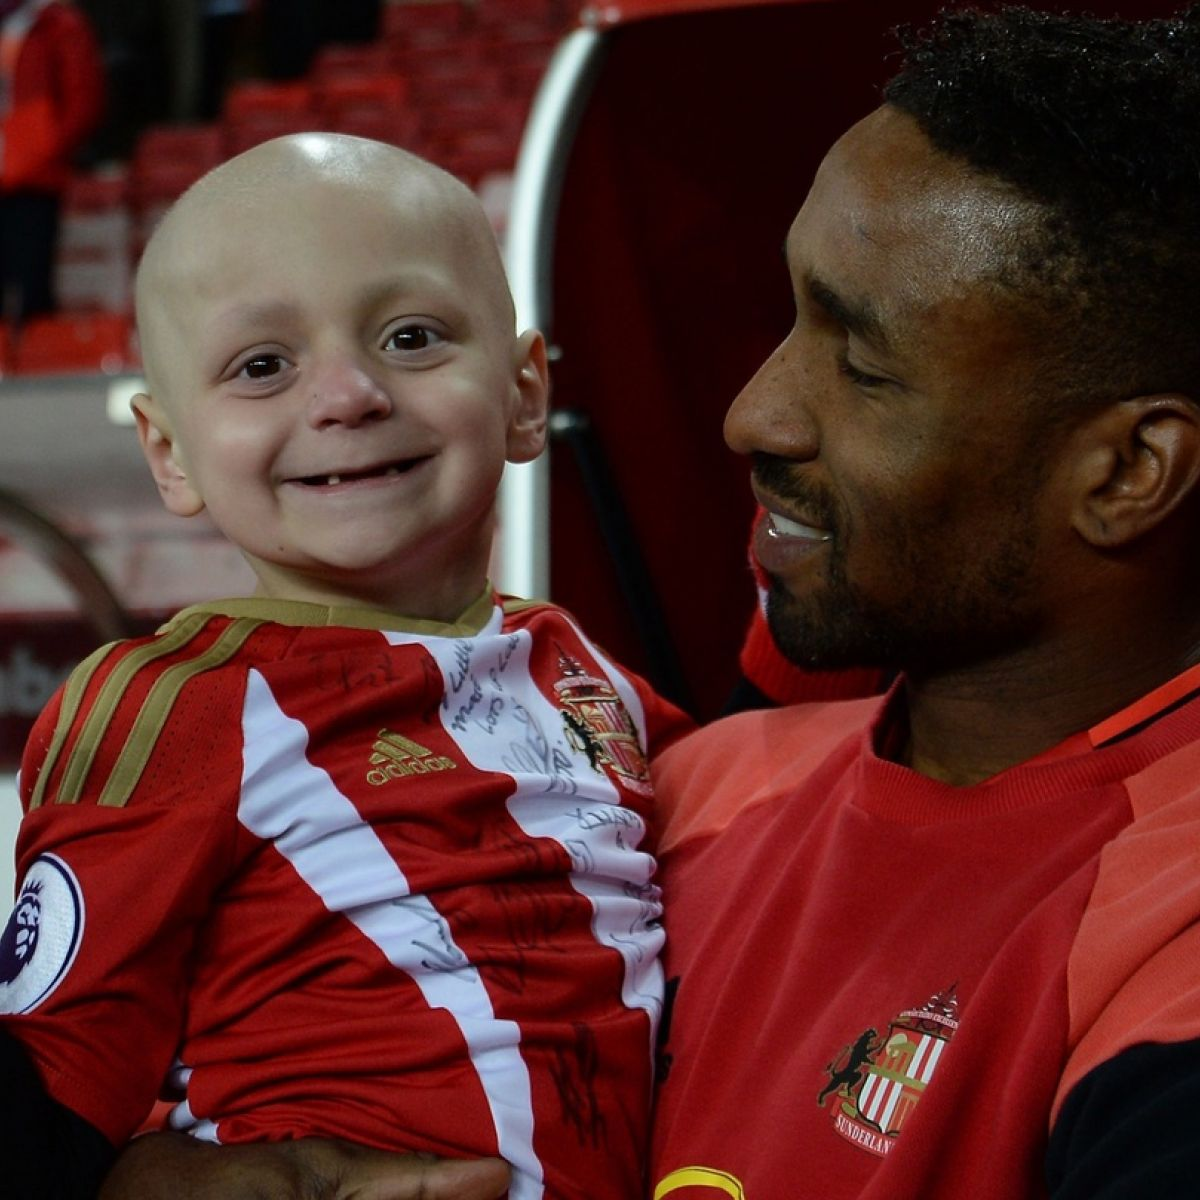 Three years ago today, 6-year-old Bradley Lowery sadly lost his battle to terminal cancer. Nobody will ever forget how many lives Bradley brightened up. Rest in peace little man. ❤️🙏